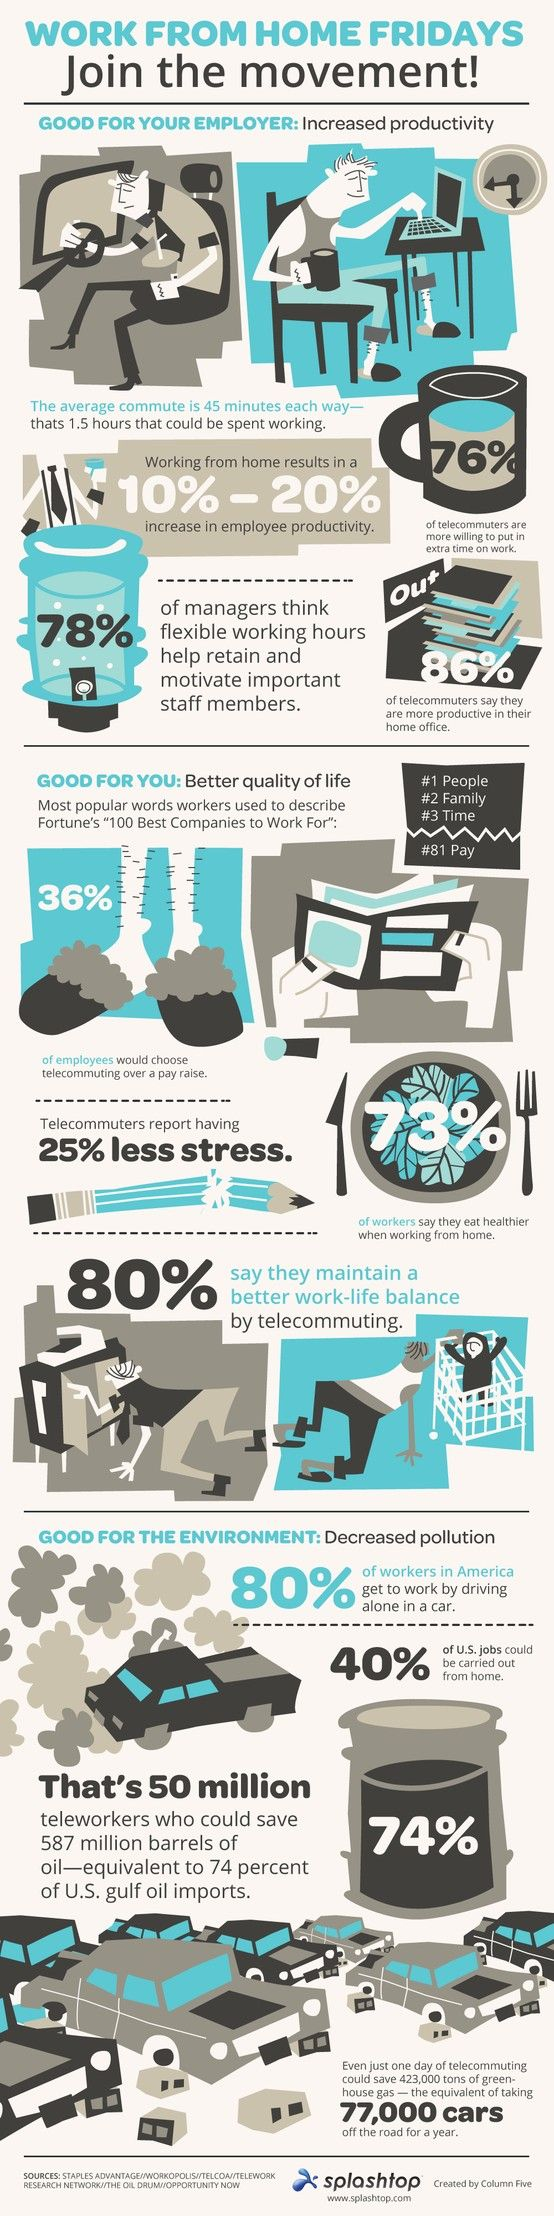 Work from Home Fridays - Join the movement! Infographic